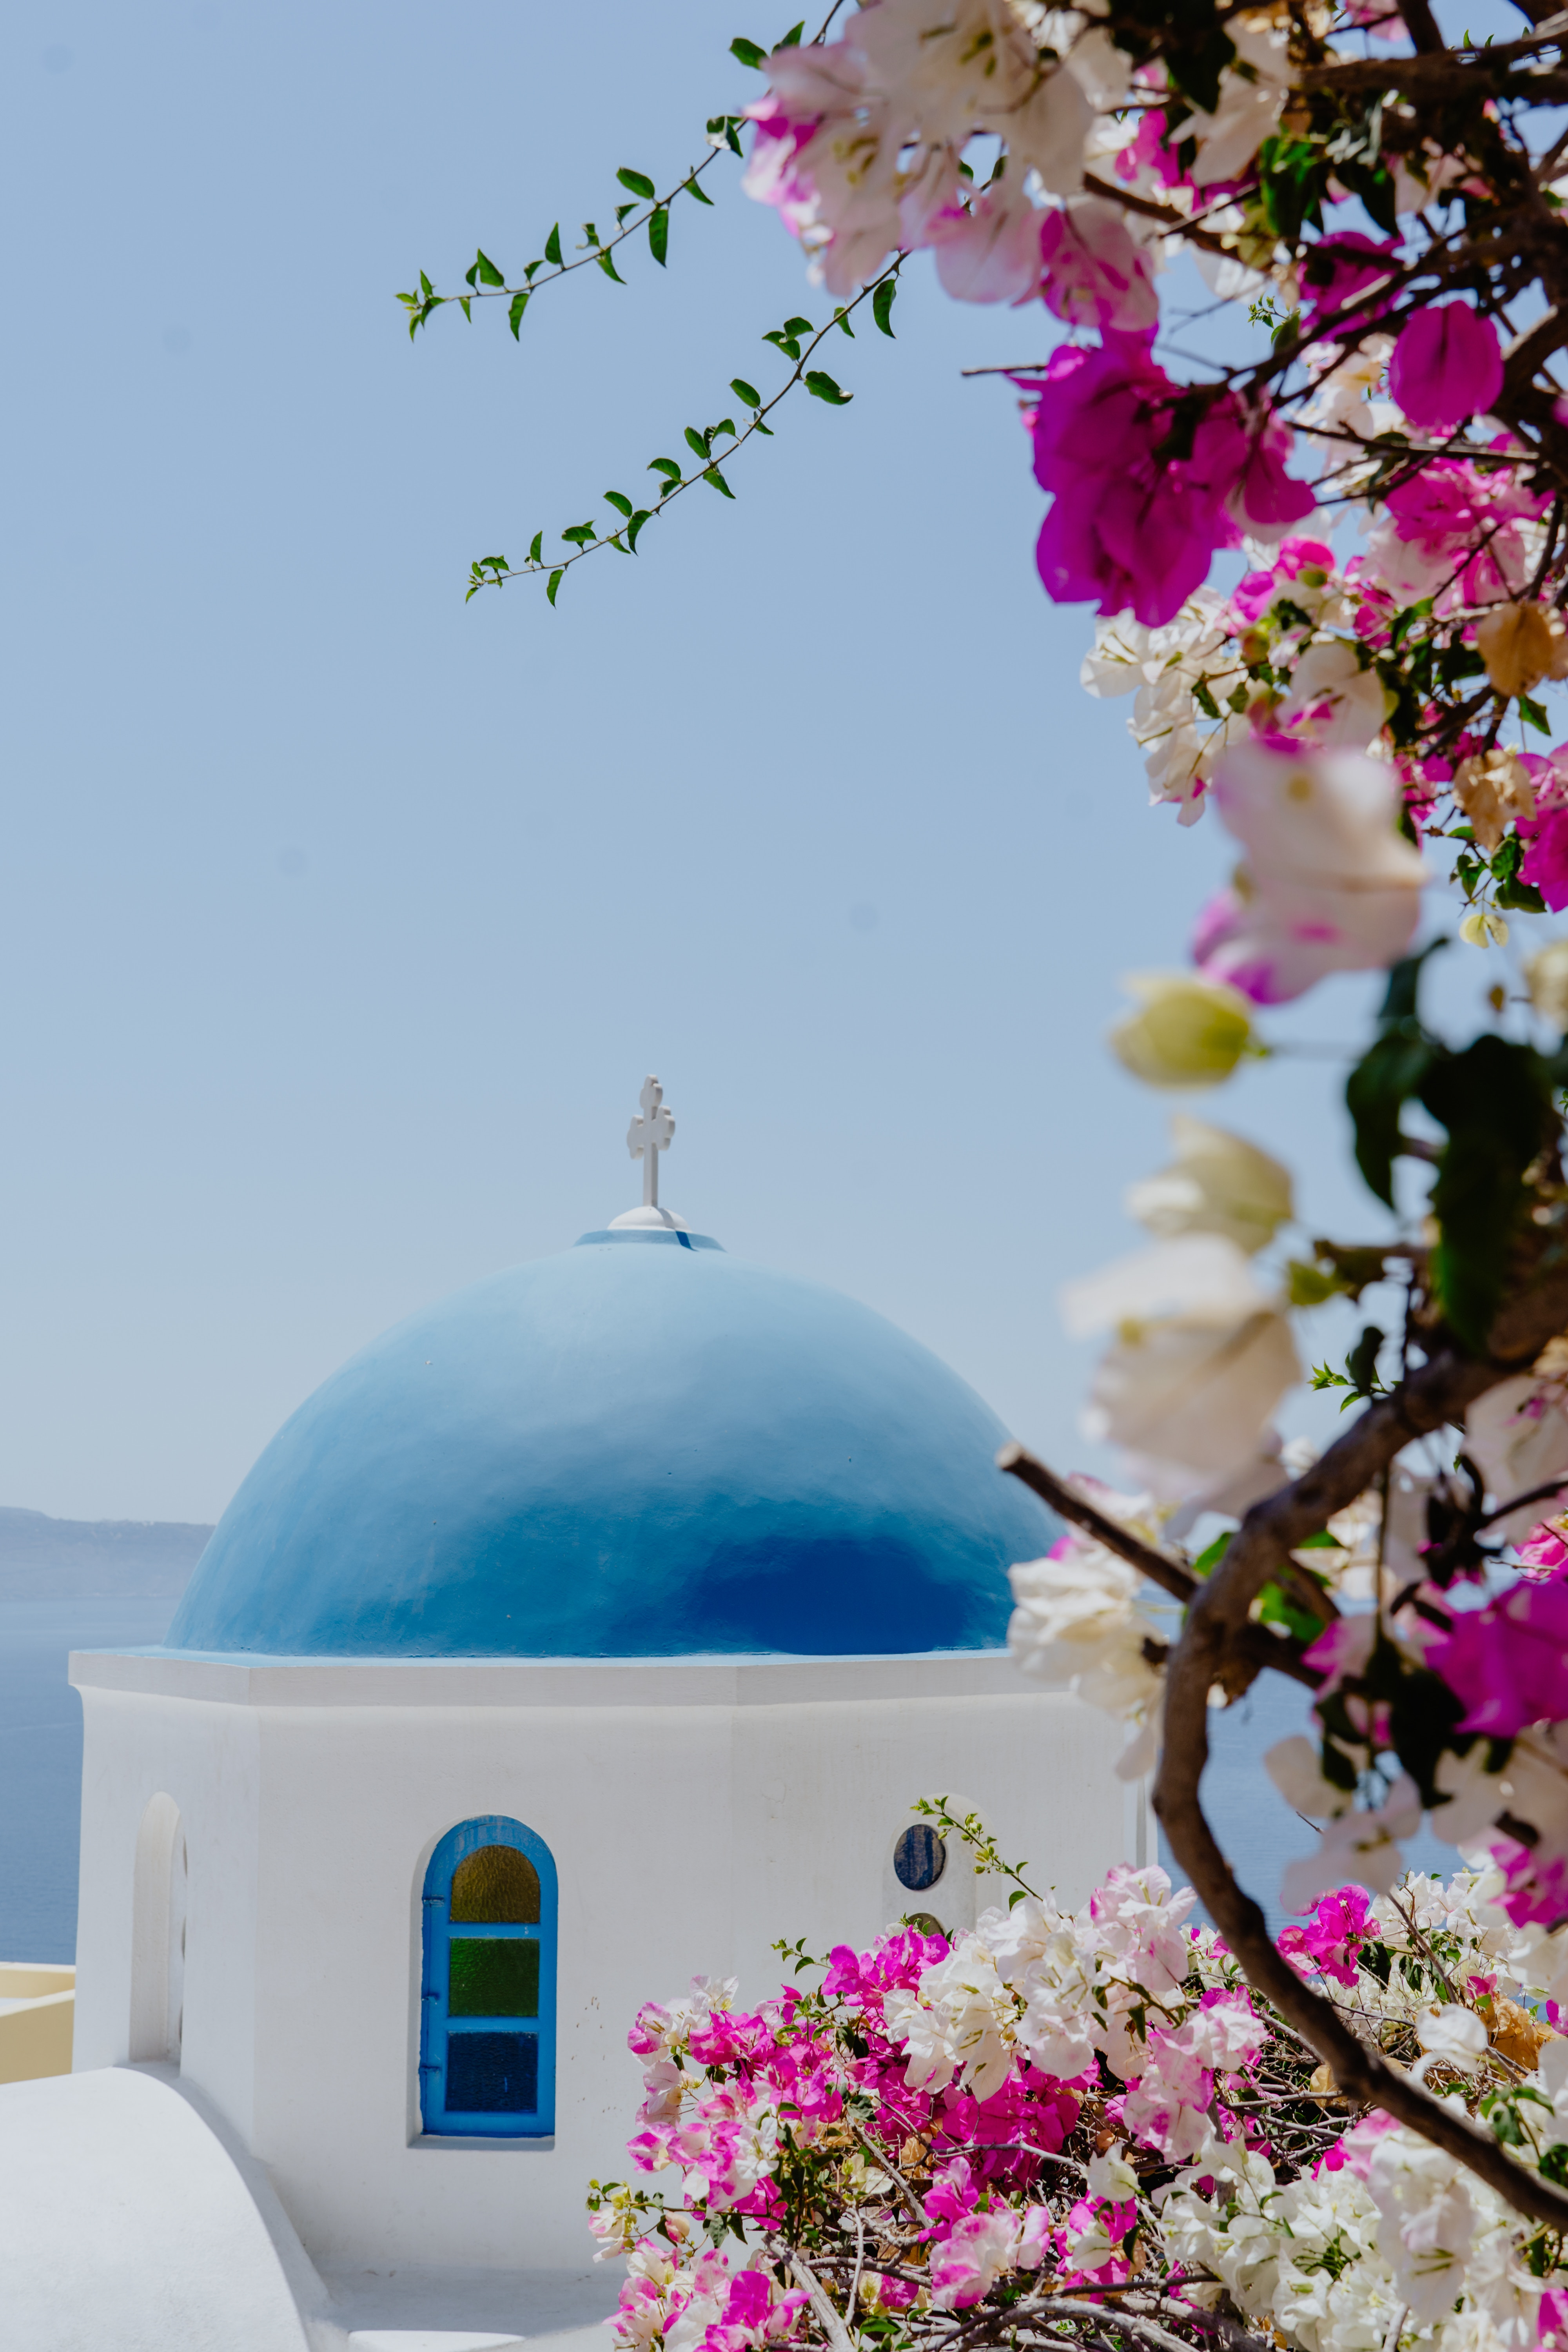 Greece - Places I Would Like To Visit One Day - Communikait by Kait Hanson